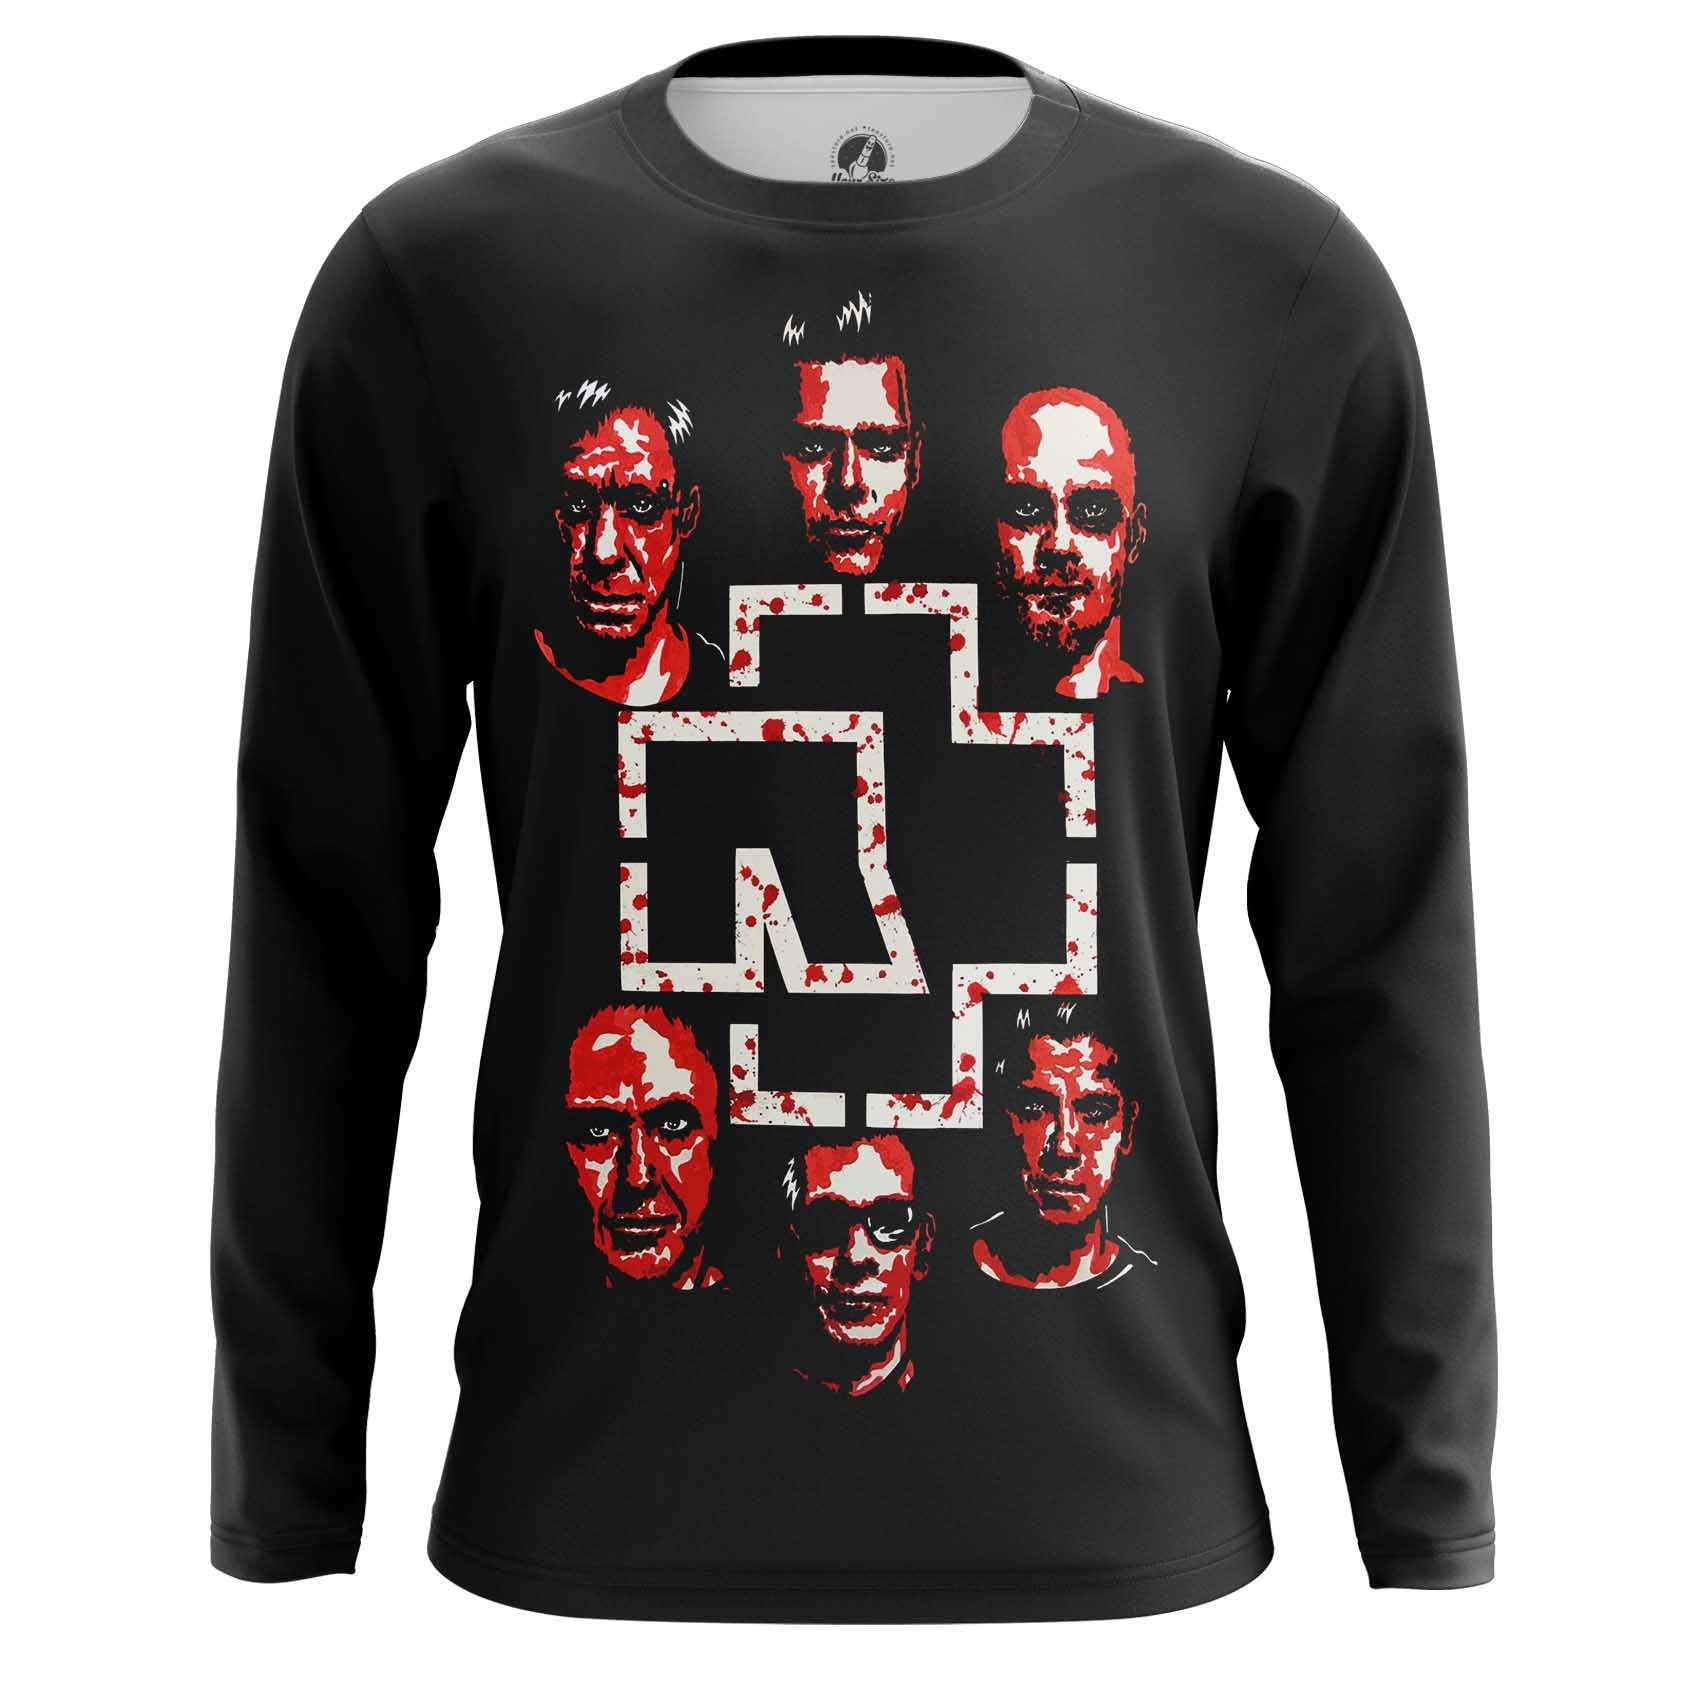 Collectibles Long Sleeve Rammstein Music Band